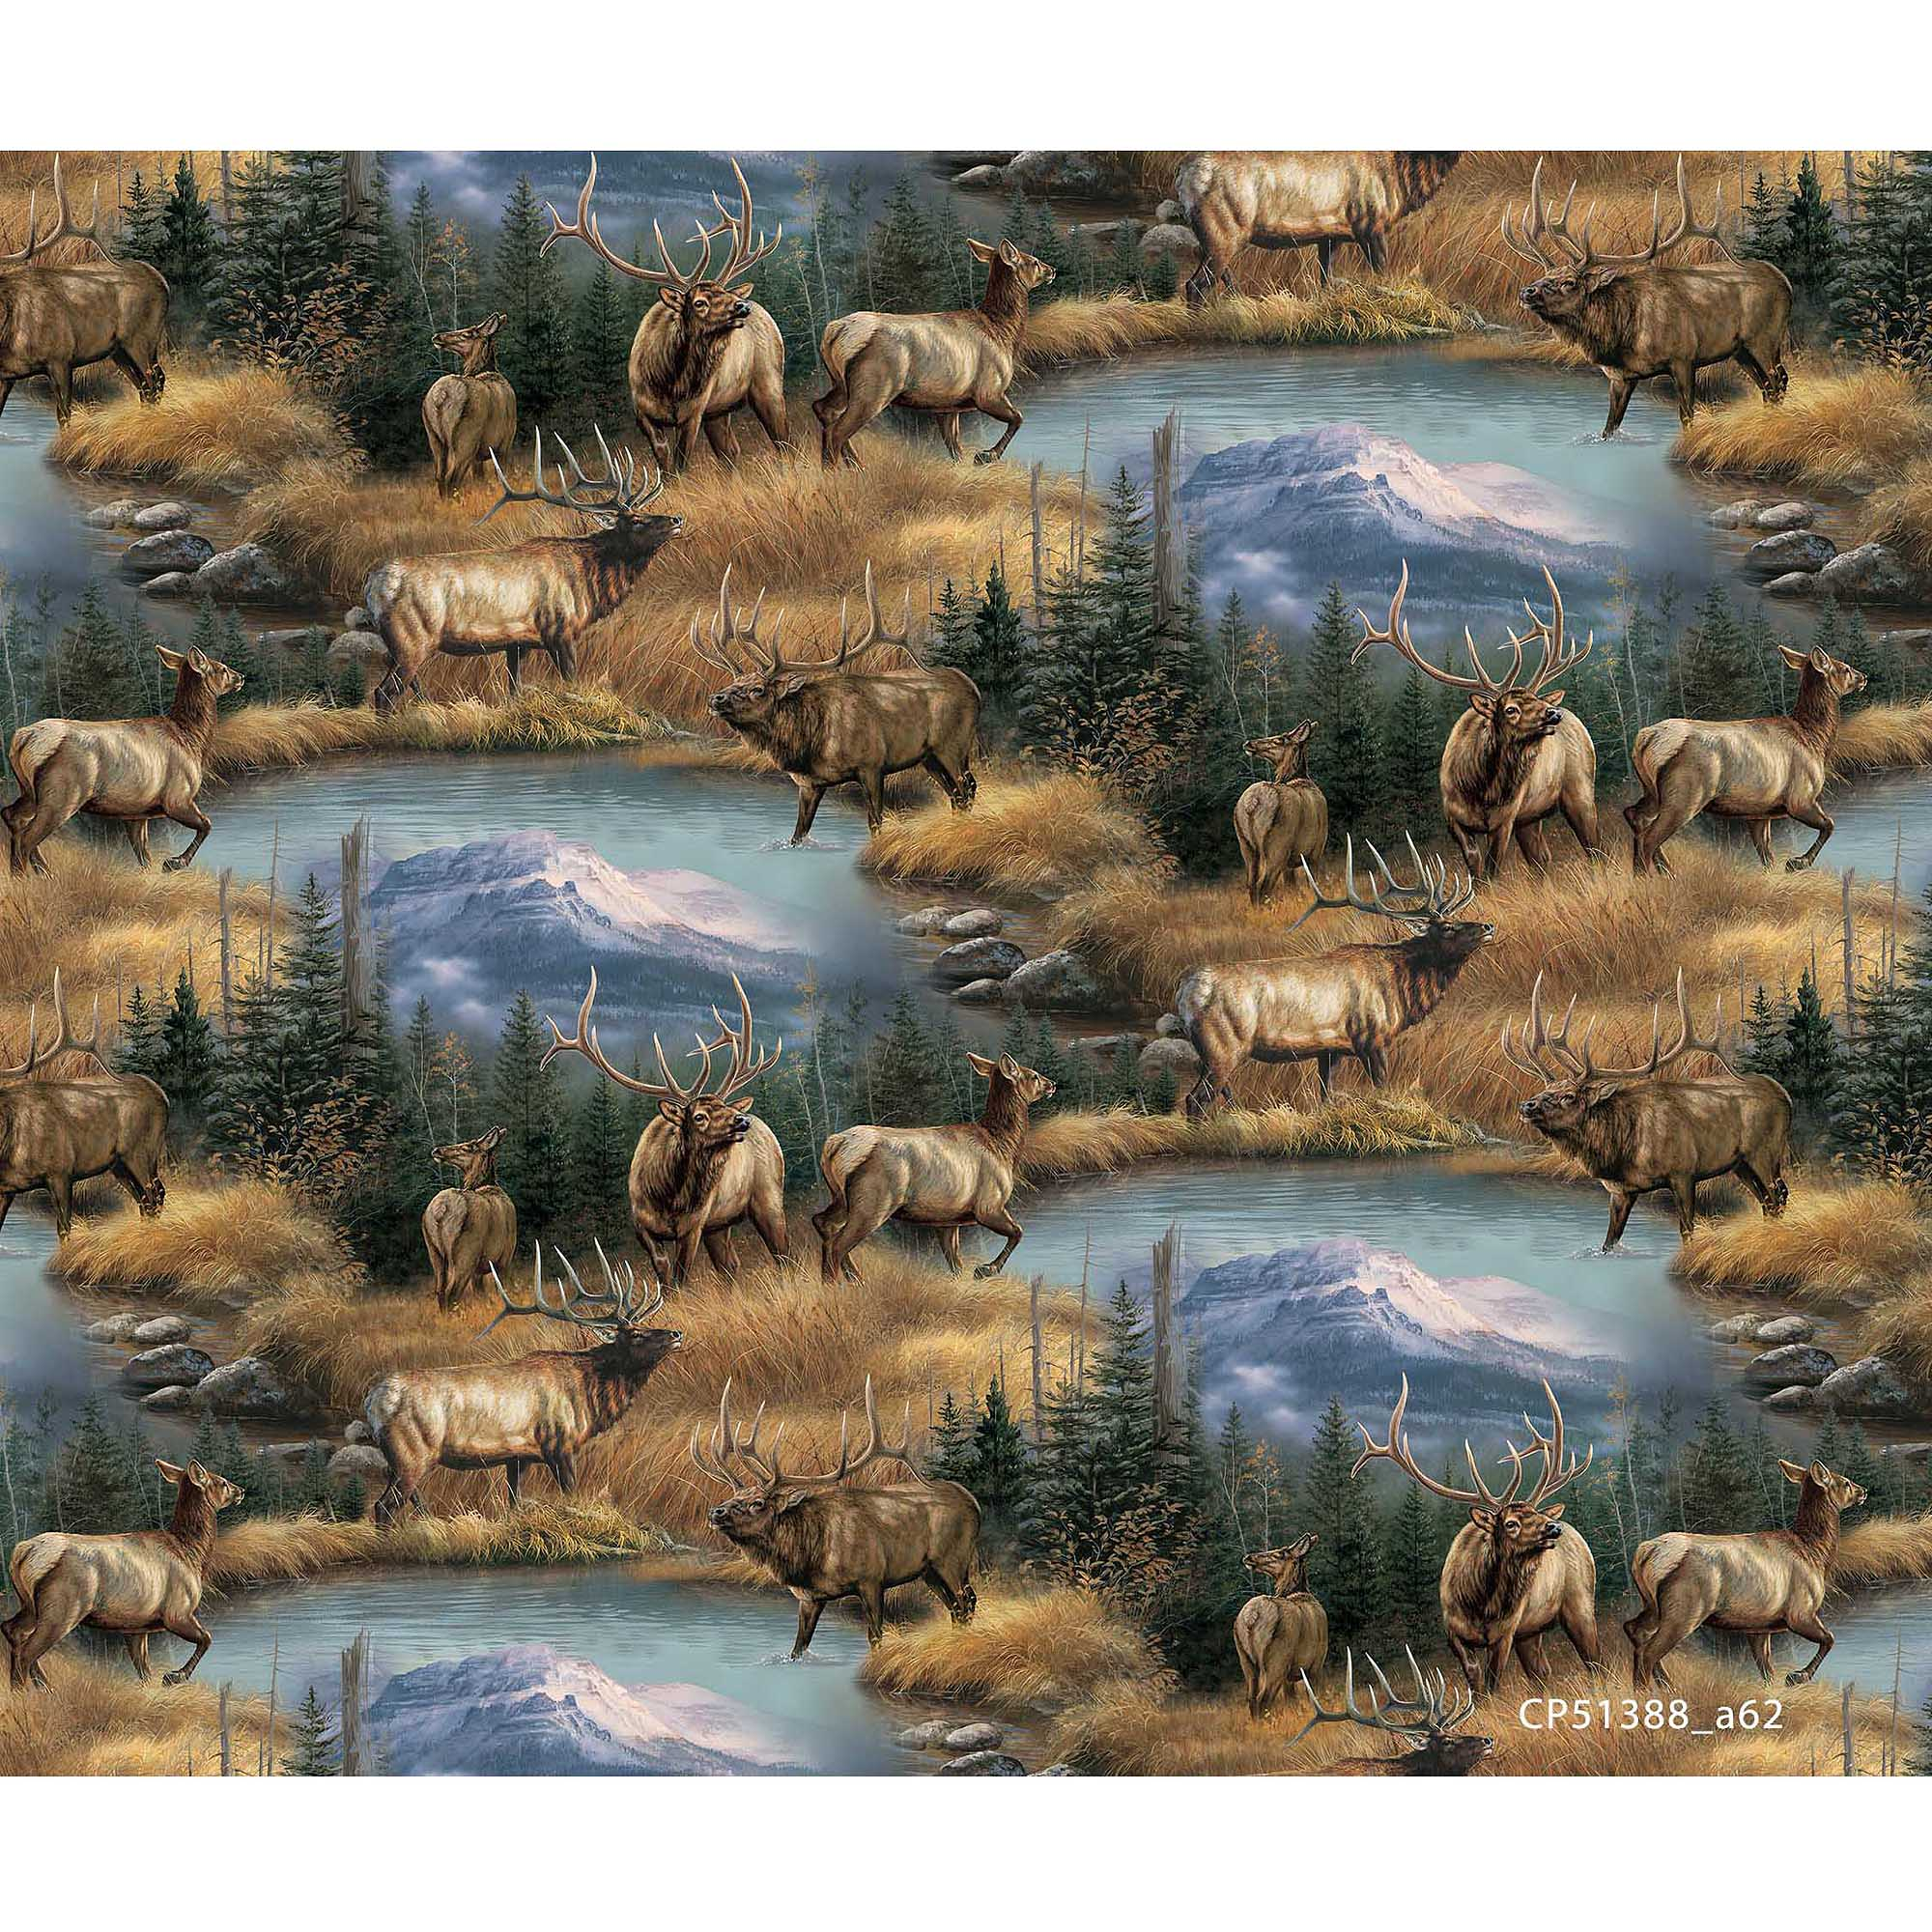 Springs Creative Wild Wings Brighton Fabric, Brighton Passage Scenic, Multicolor